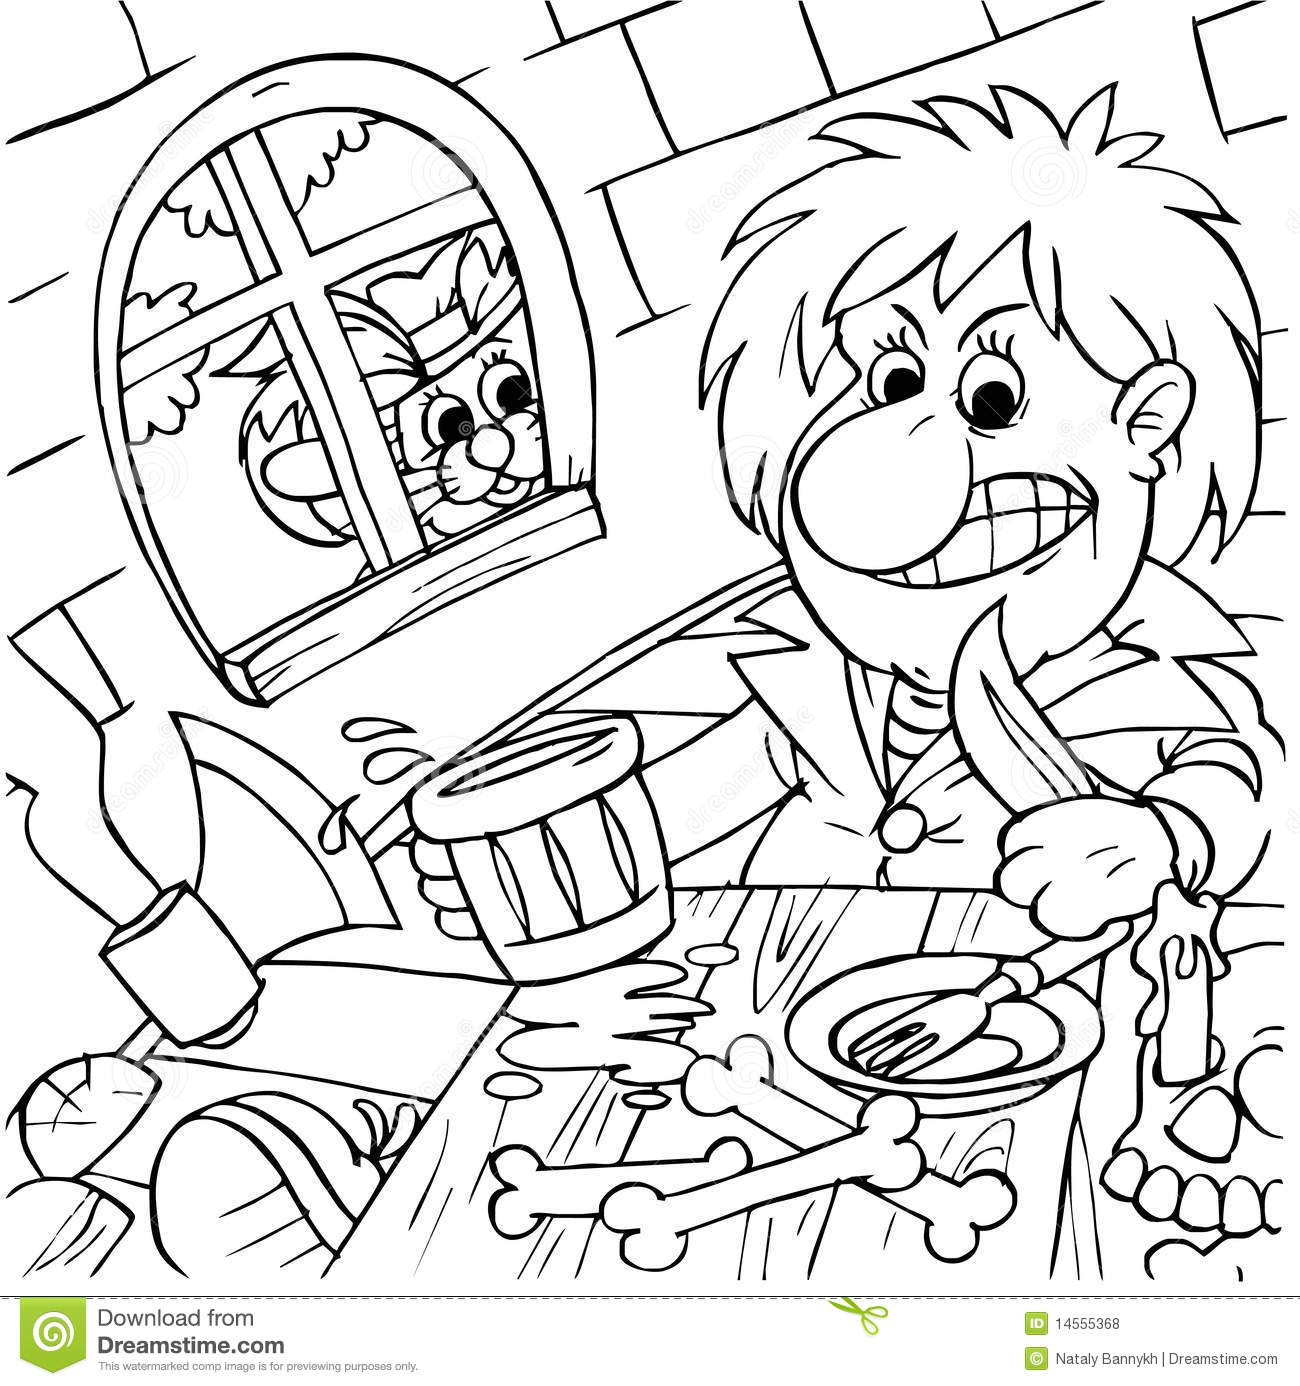 Dorable Puss In Boots Coloring Pages Disney Collection - Example ...